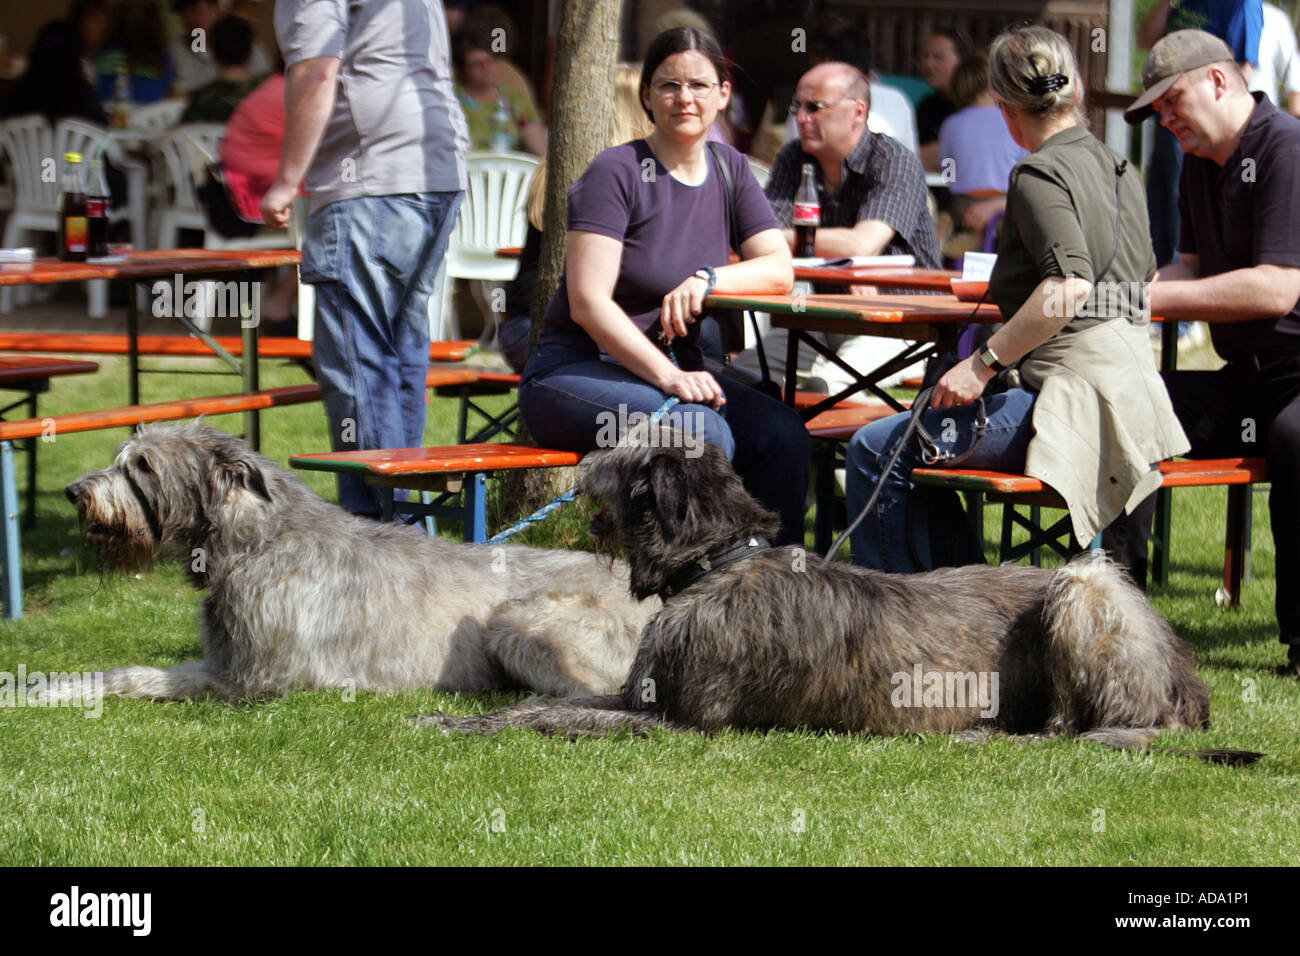 Irish Wolfhound (Canis lupus f. familiaris), lying on lawn next owners, Germany Stock Photo